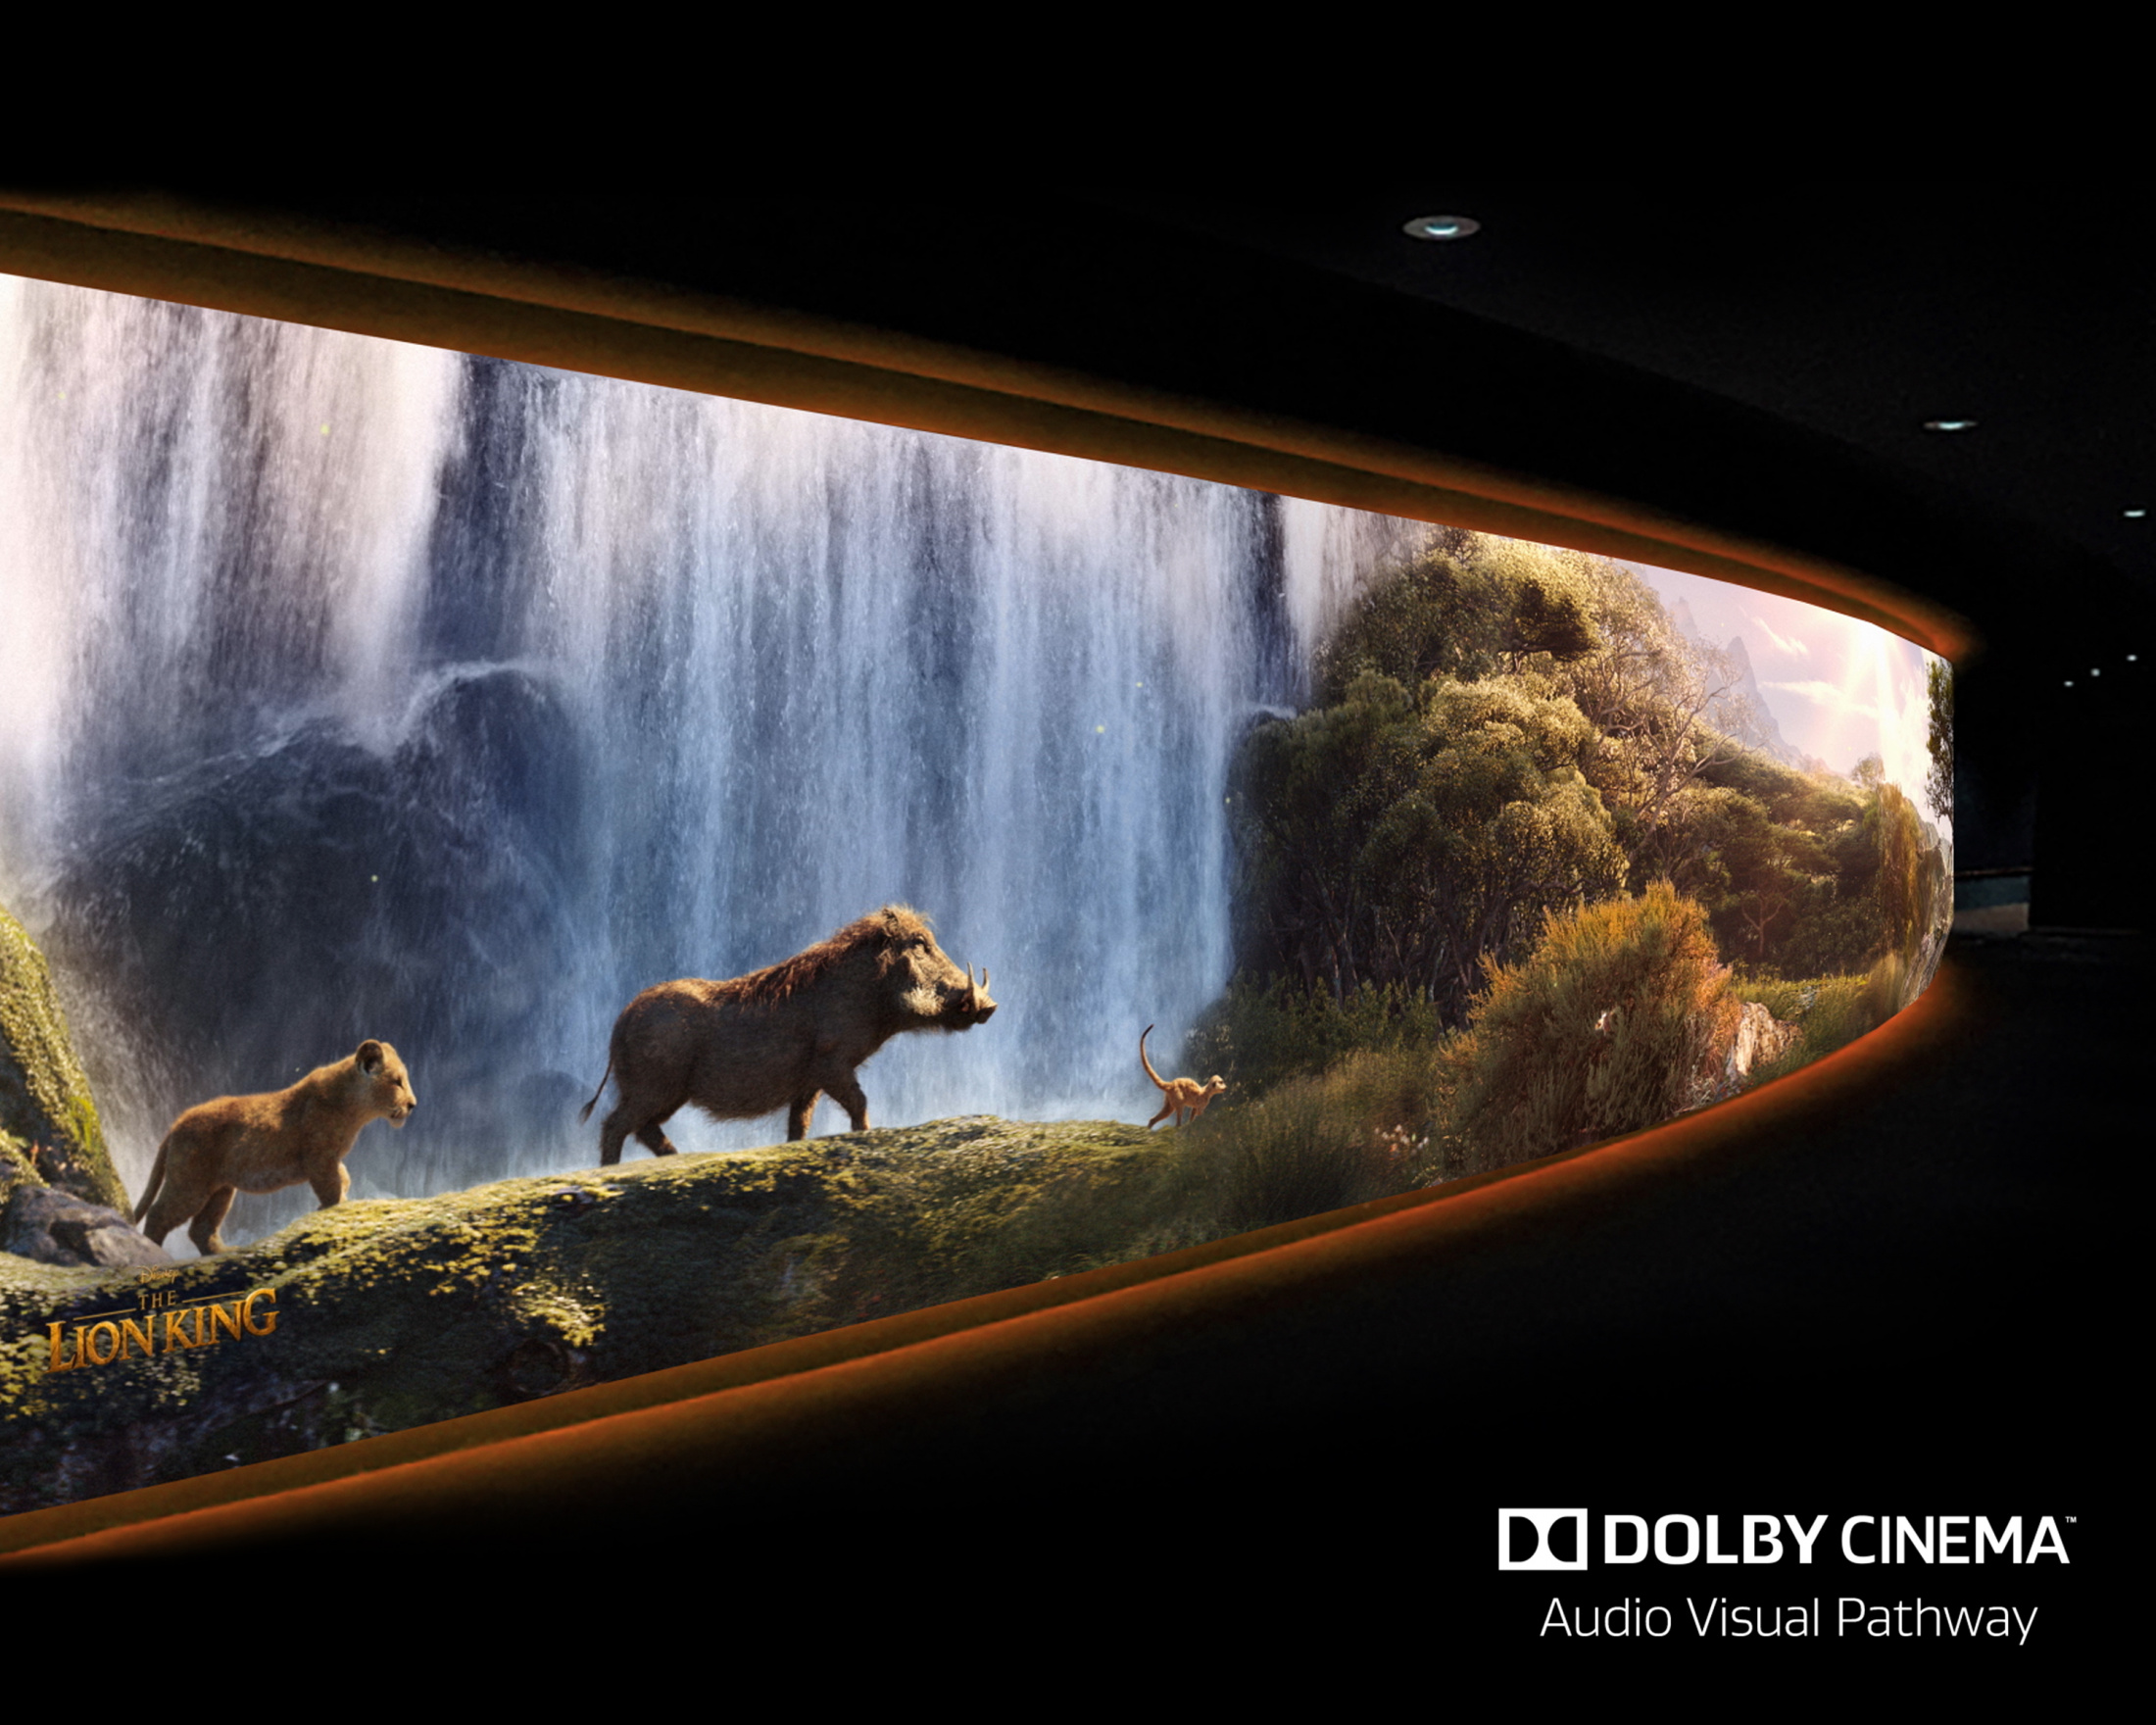 The Lion King - Dolby Theater Audio Visual Pathway Thumbnail